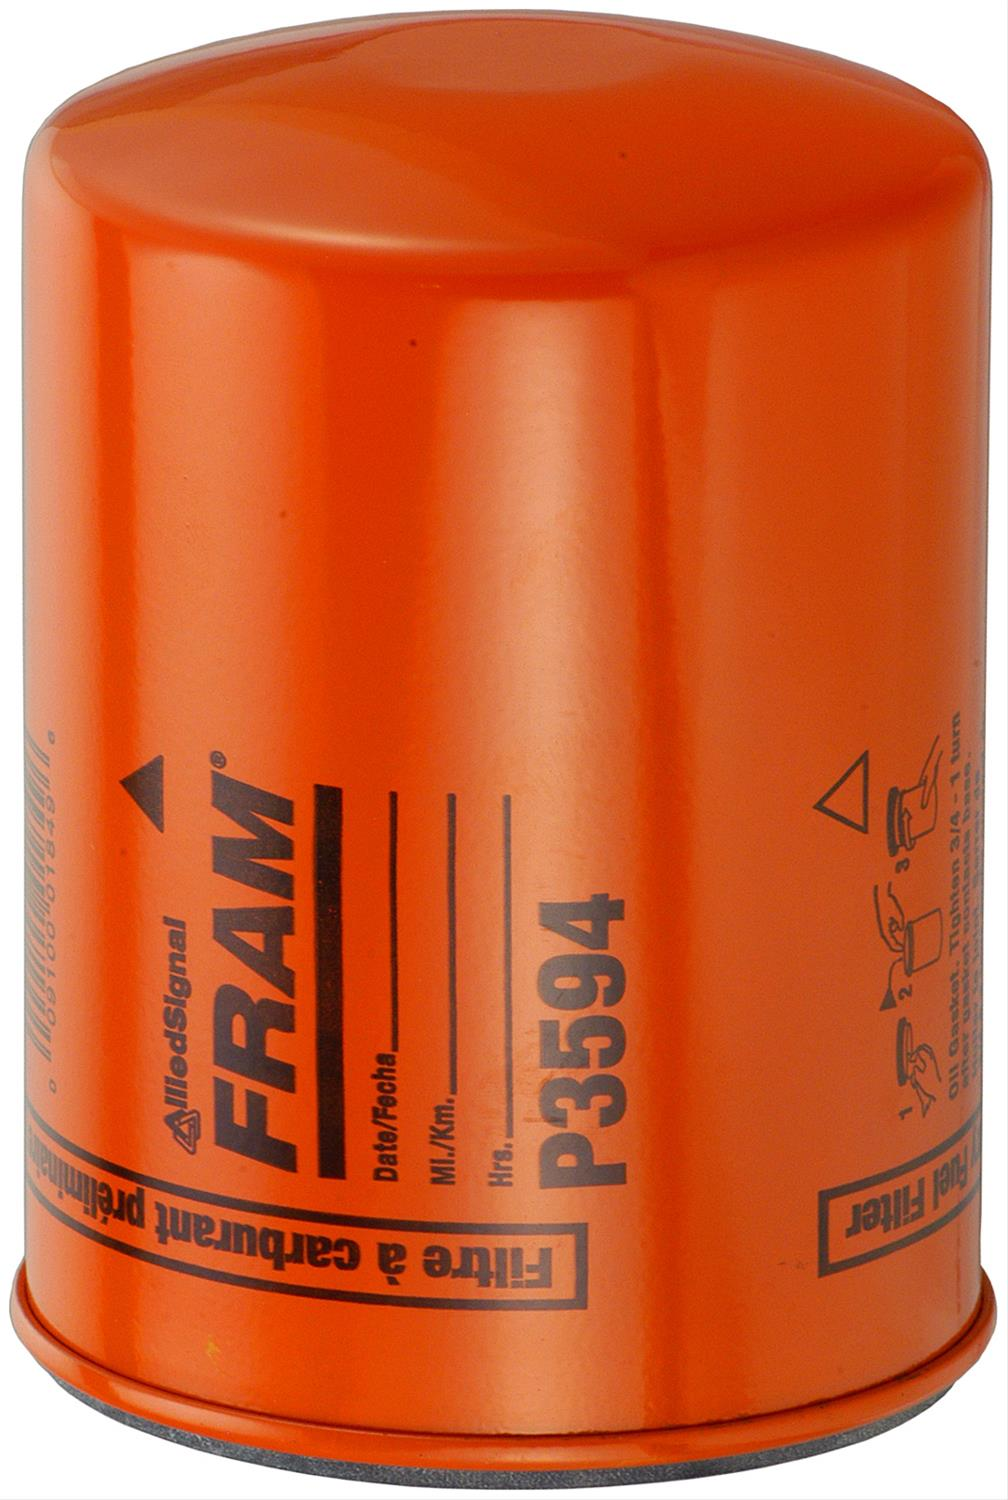 fram fuel filters p3594 - free shipping on orders over $99 at summit racing